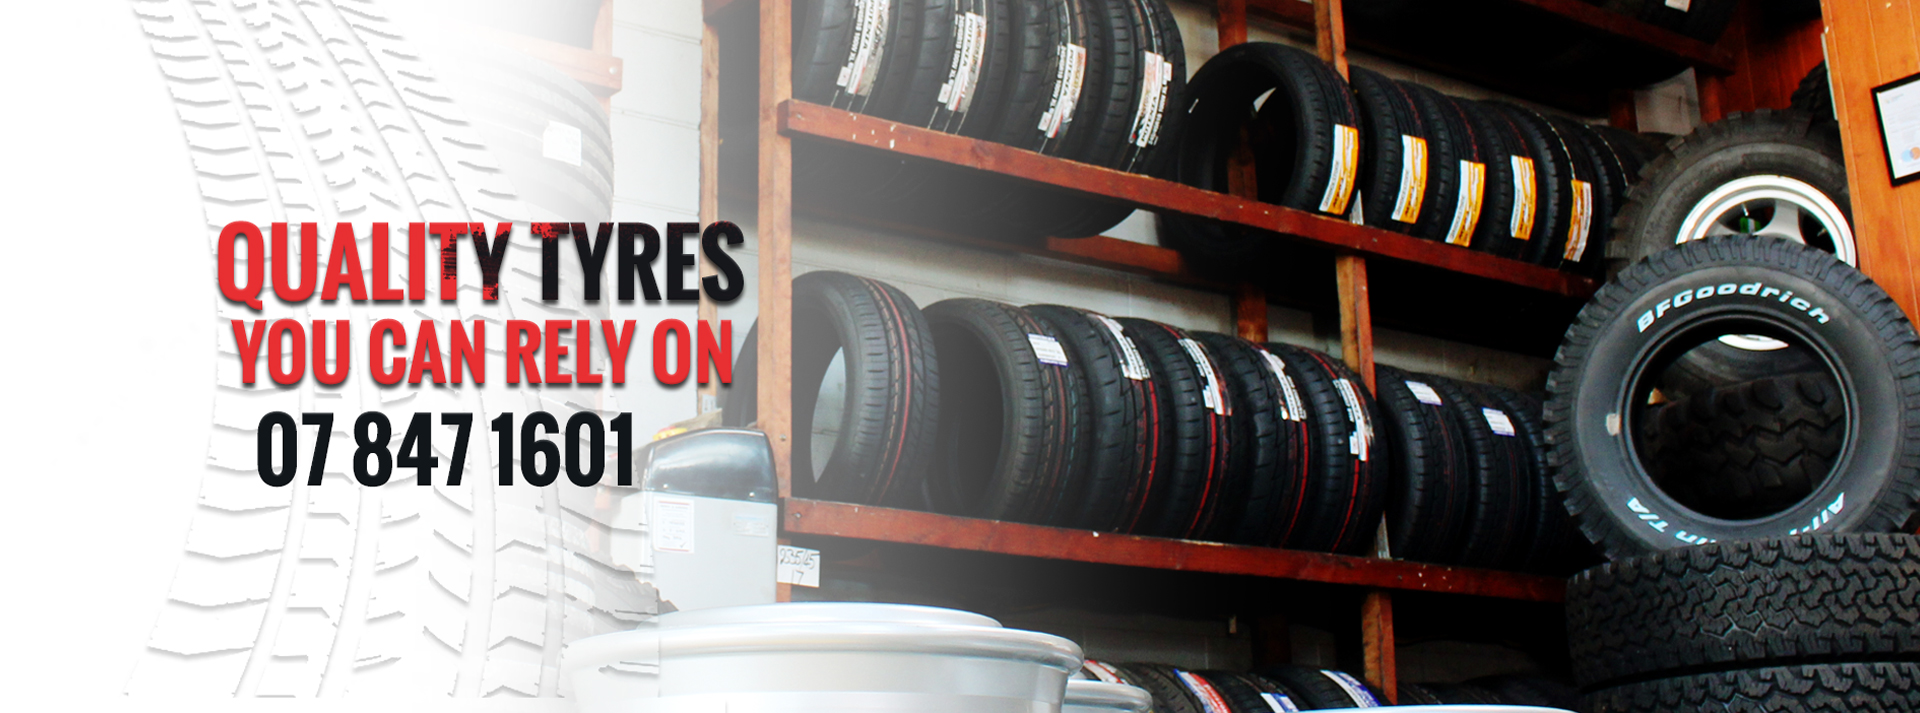 tyres banner